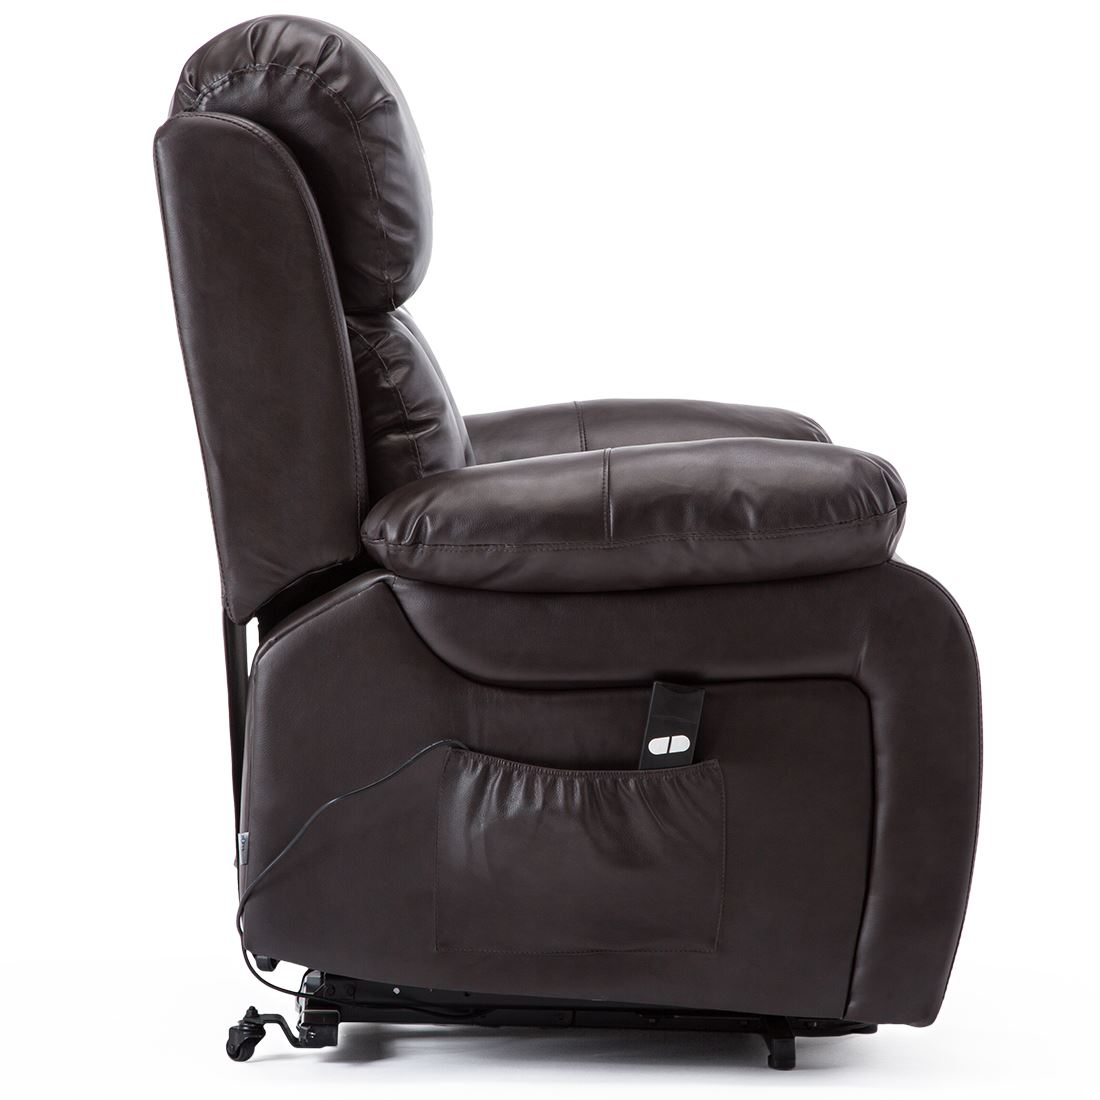 CHESTER-ELECTRIC-RISE-LEATHER-RECLINER-POWER-ARMCHAIR-HEATED-MASSAGE-SOFA-CHAIR thumbnail 15